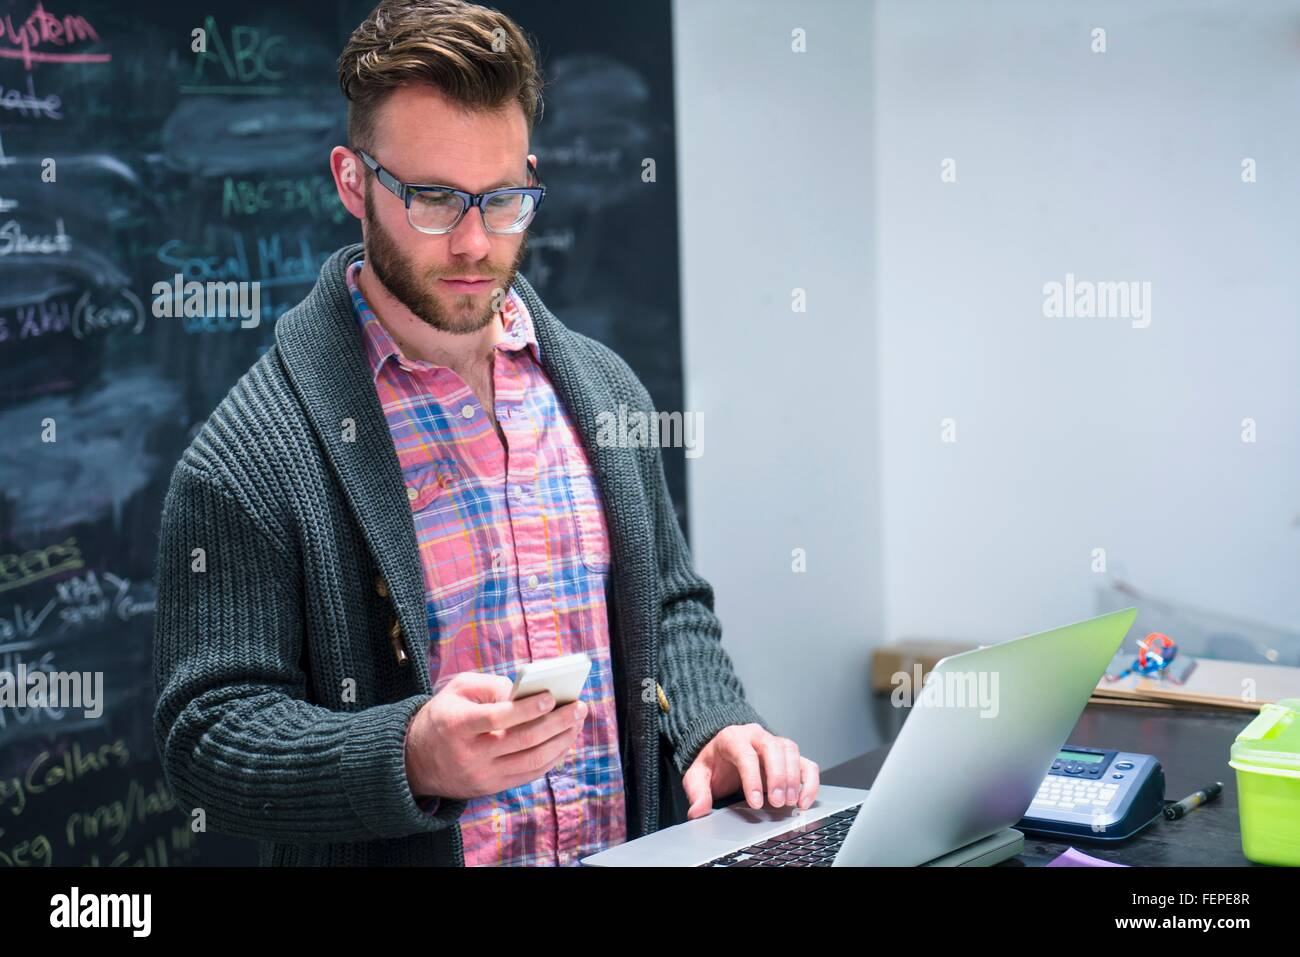 Young man in workplace using laptop looking at smartphone - Stock Image